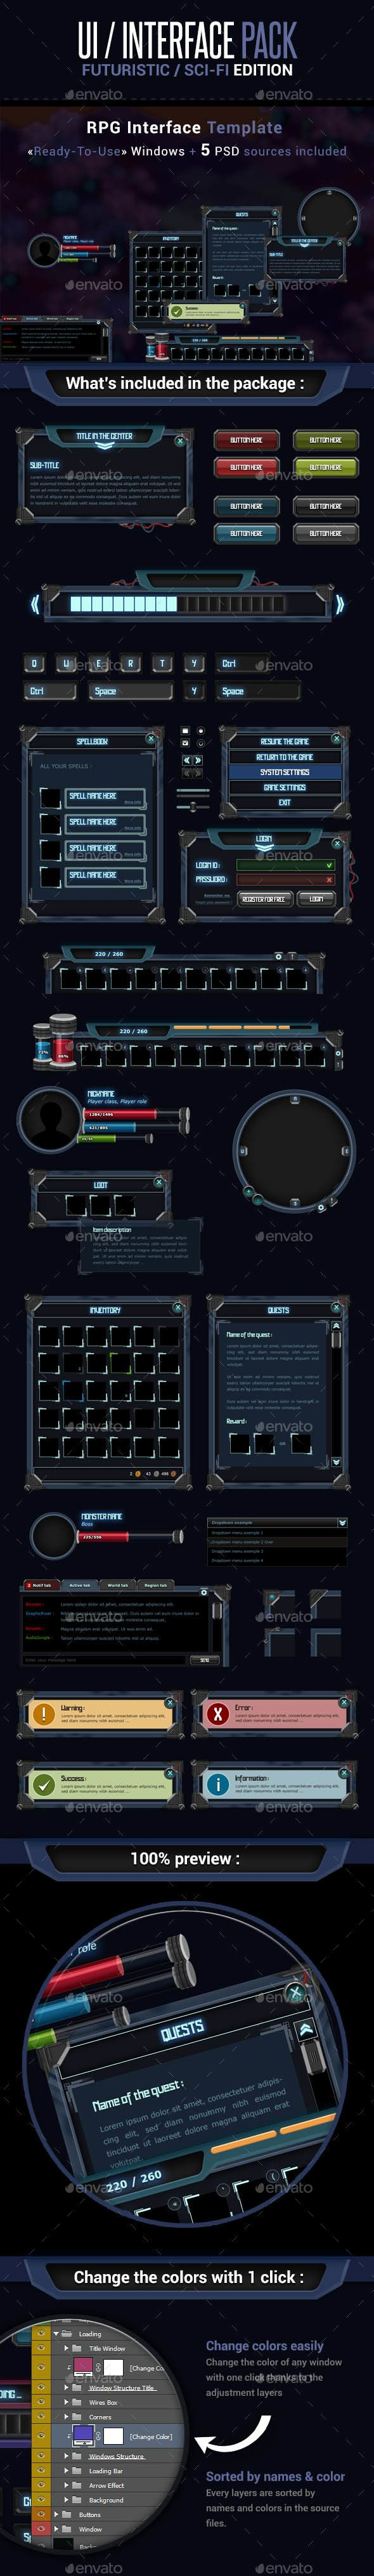 Game UI Interface Pack - Futuristic Sci-Fi Edition - User Interfaces Game Assets